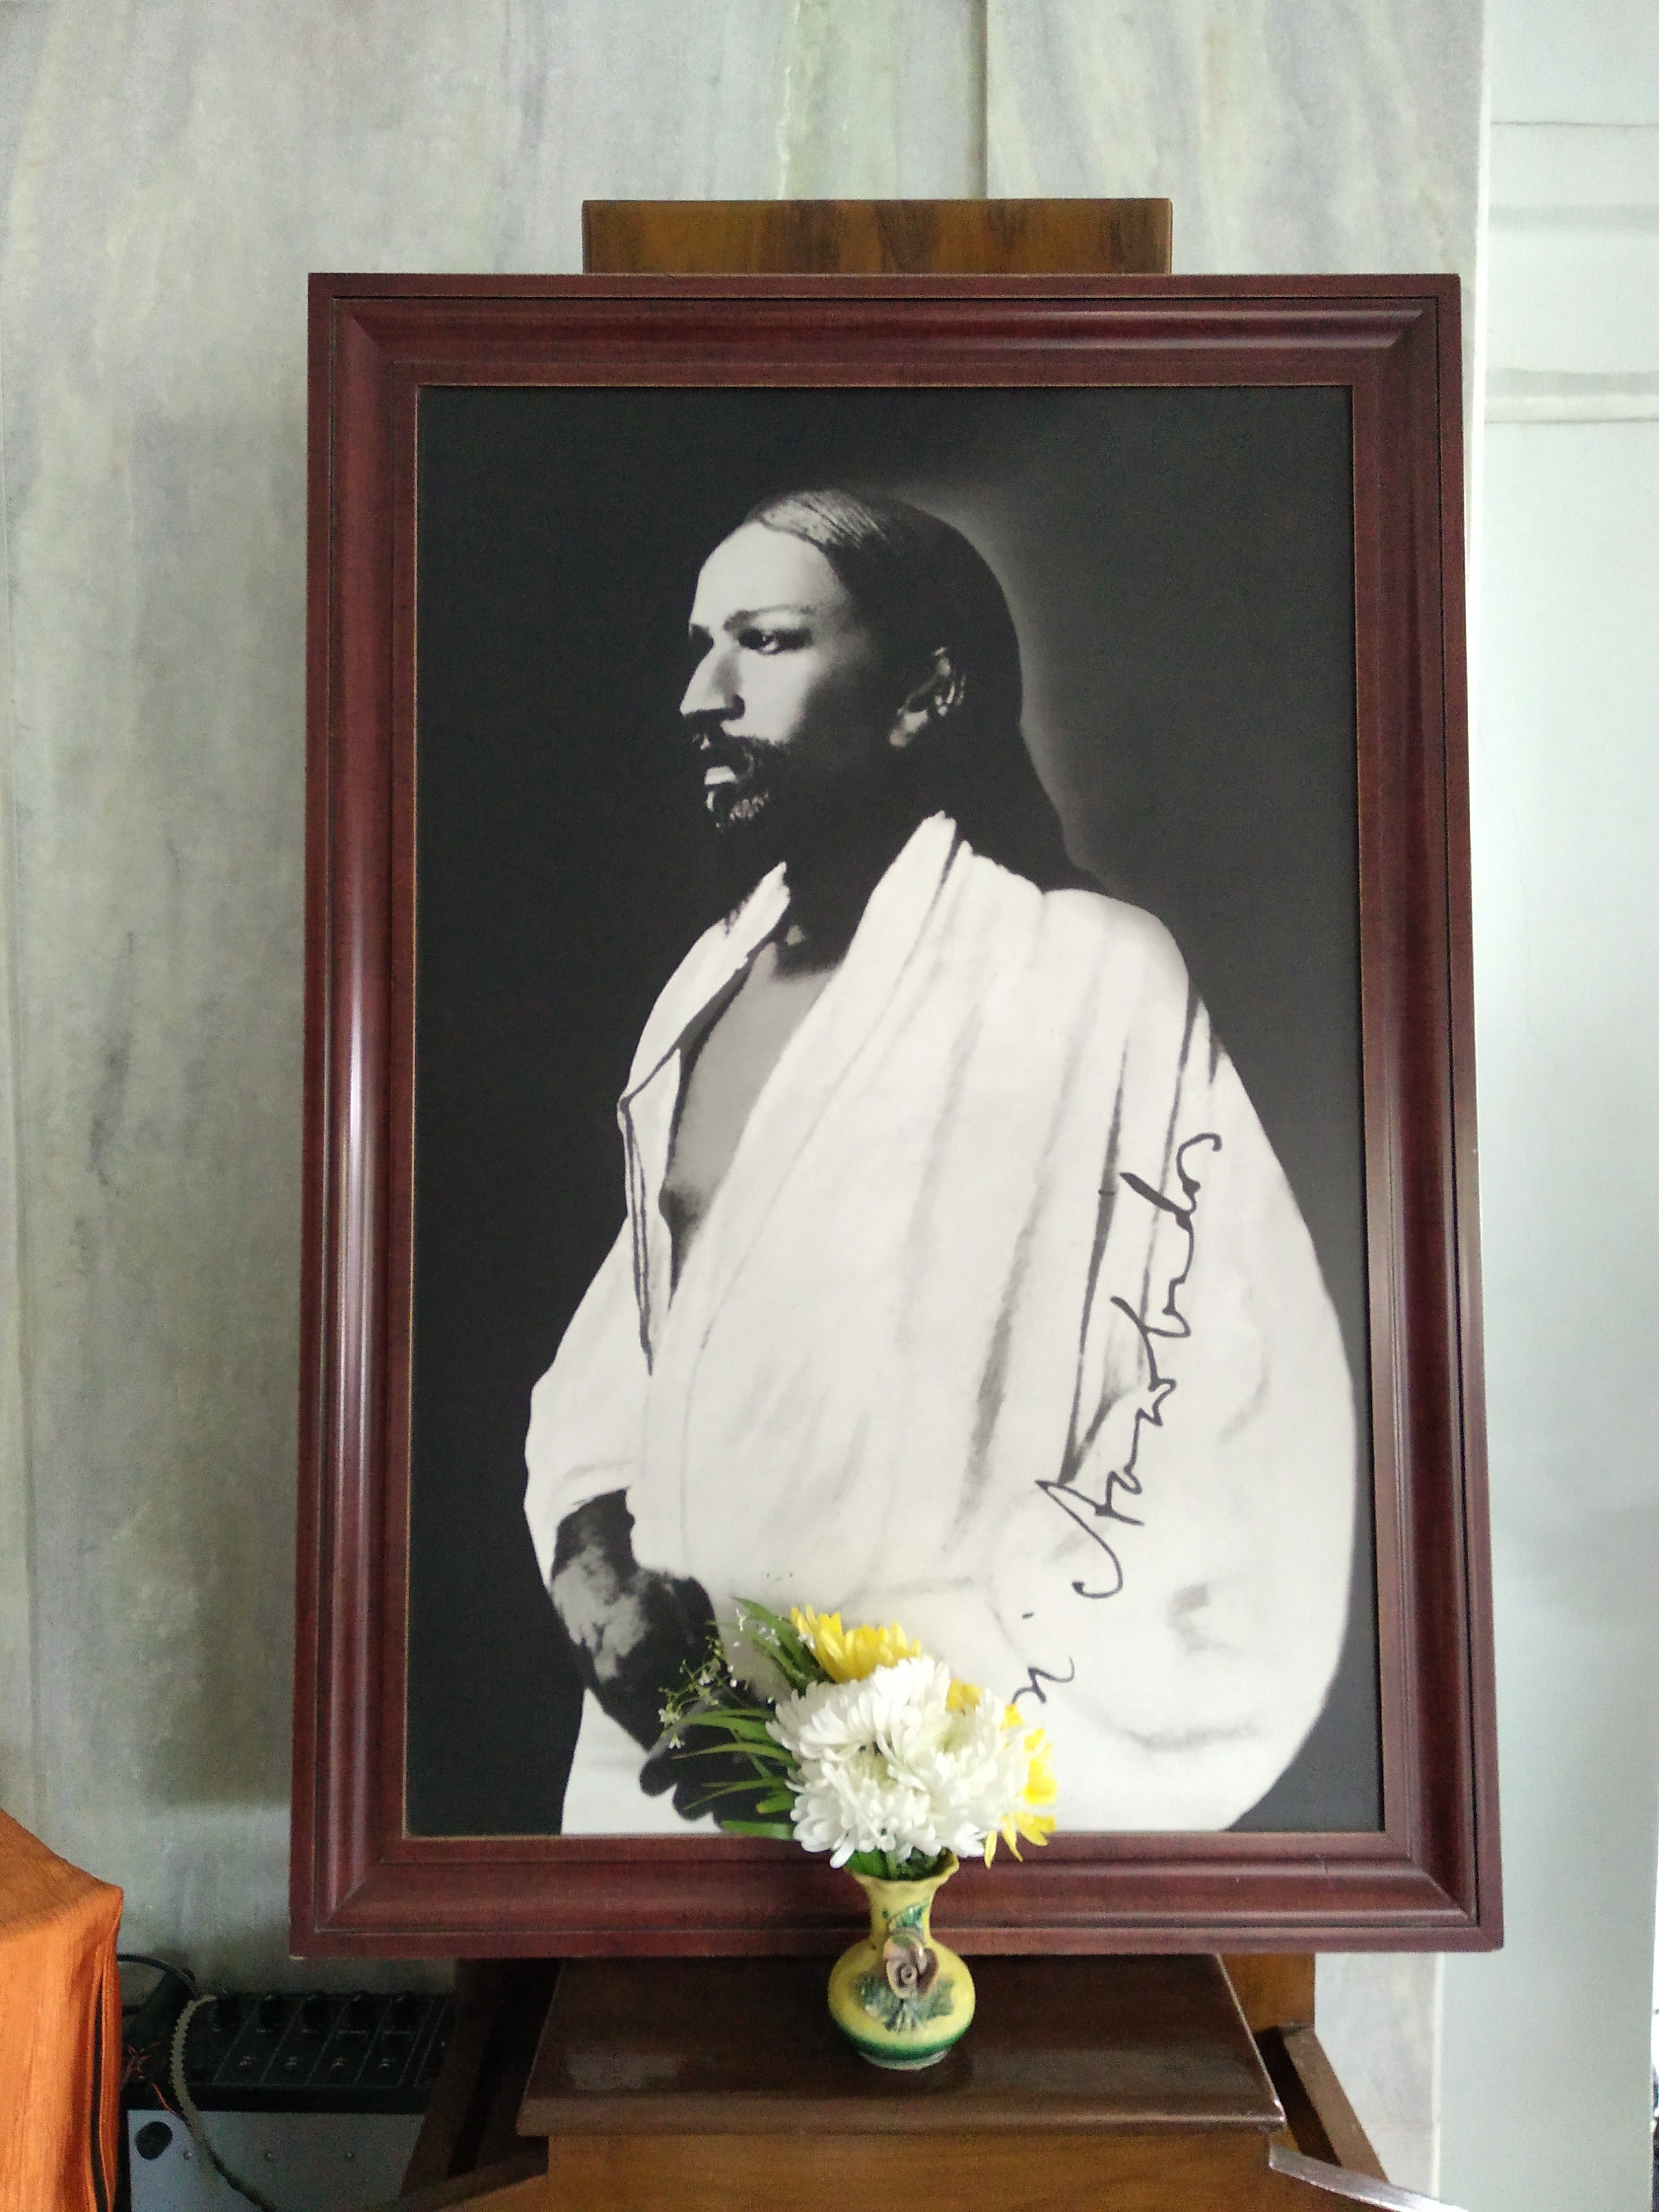 Sri Aurobindo at Lakshmi's House, Tollyg